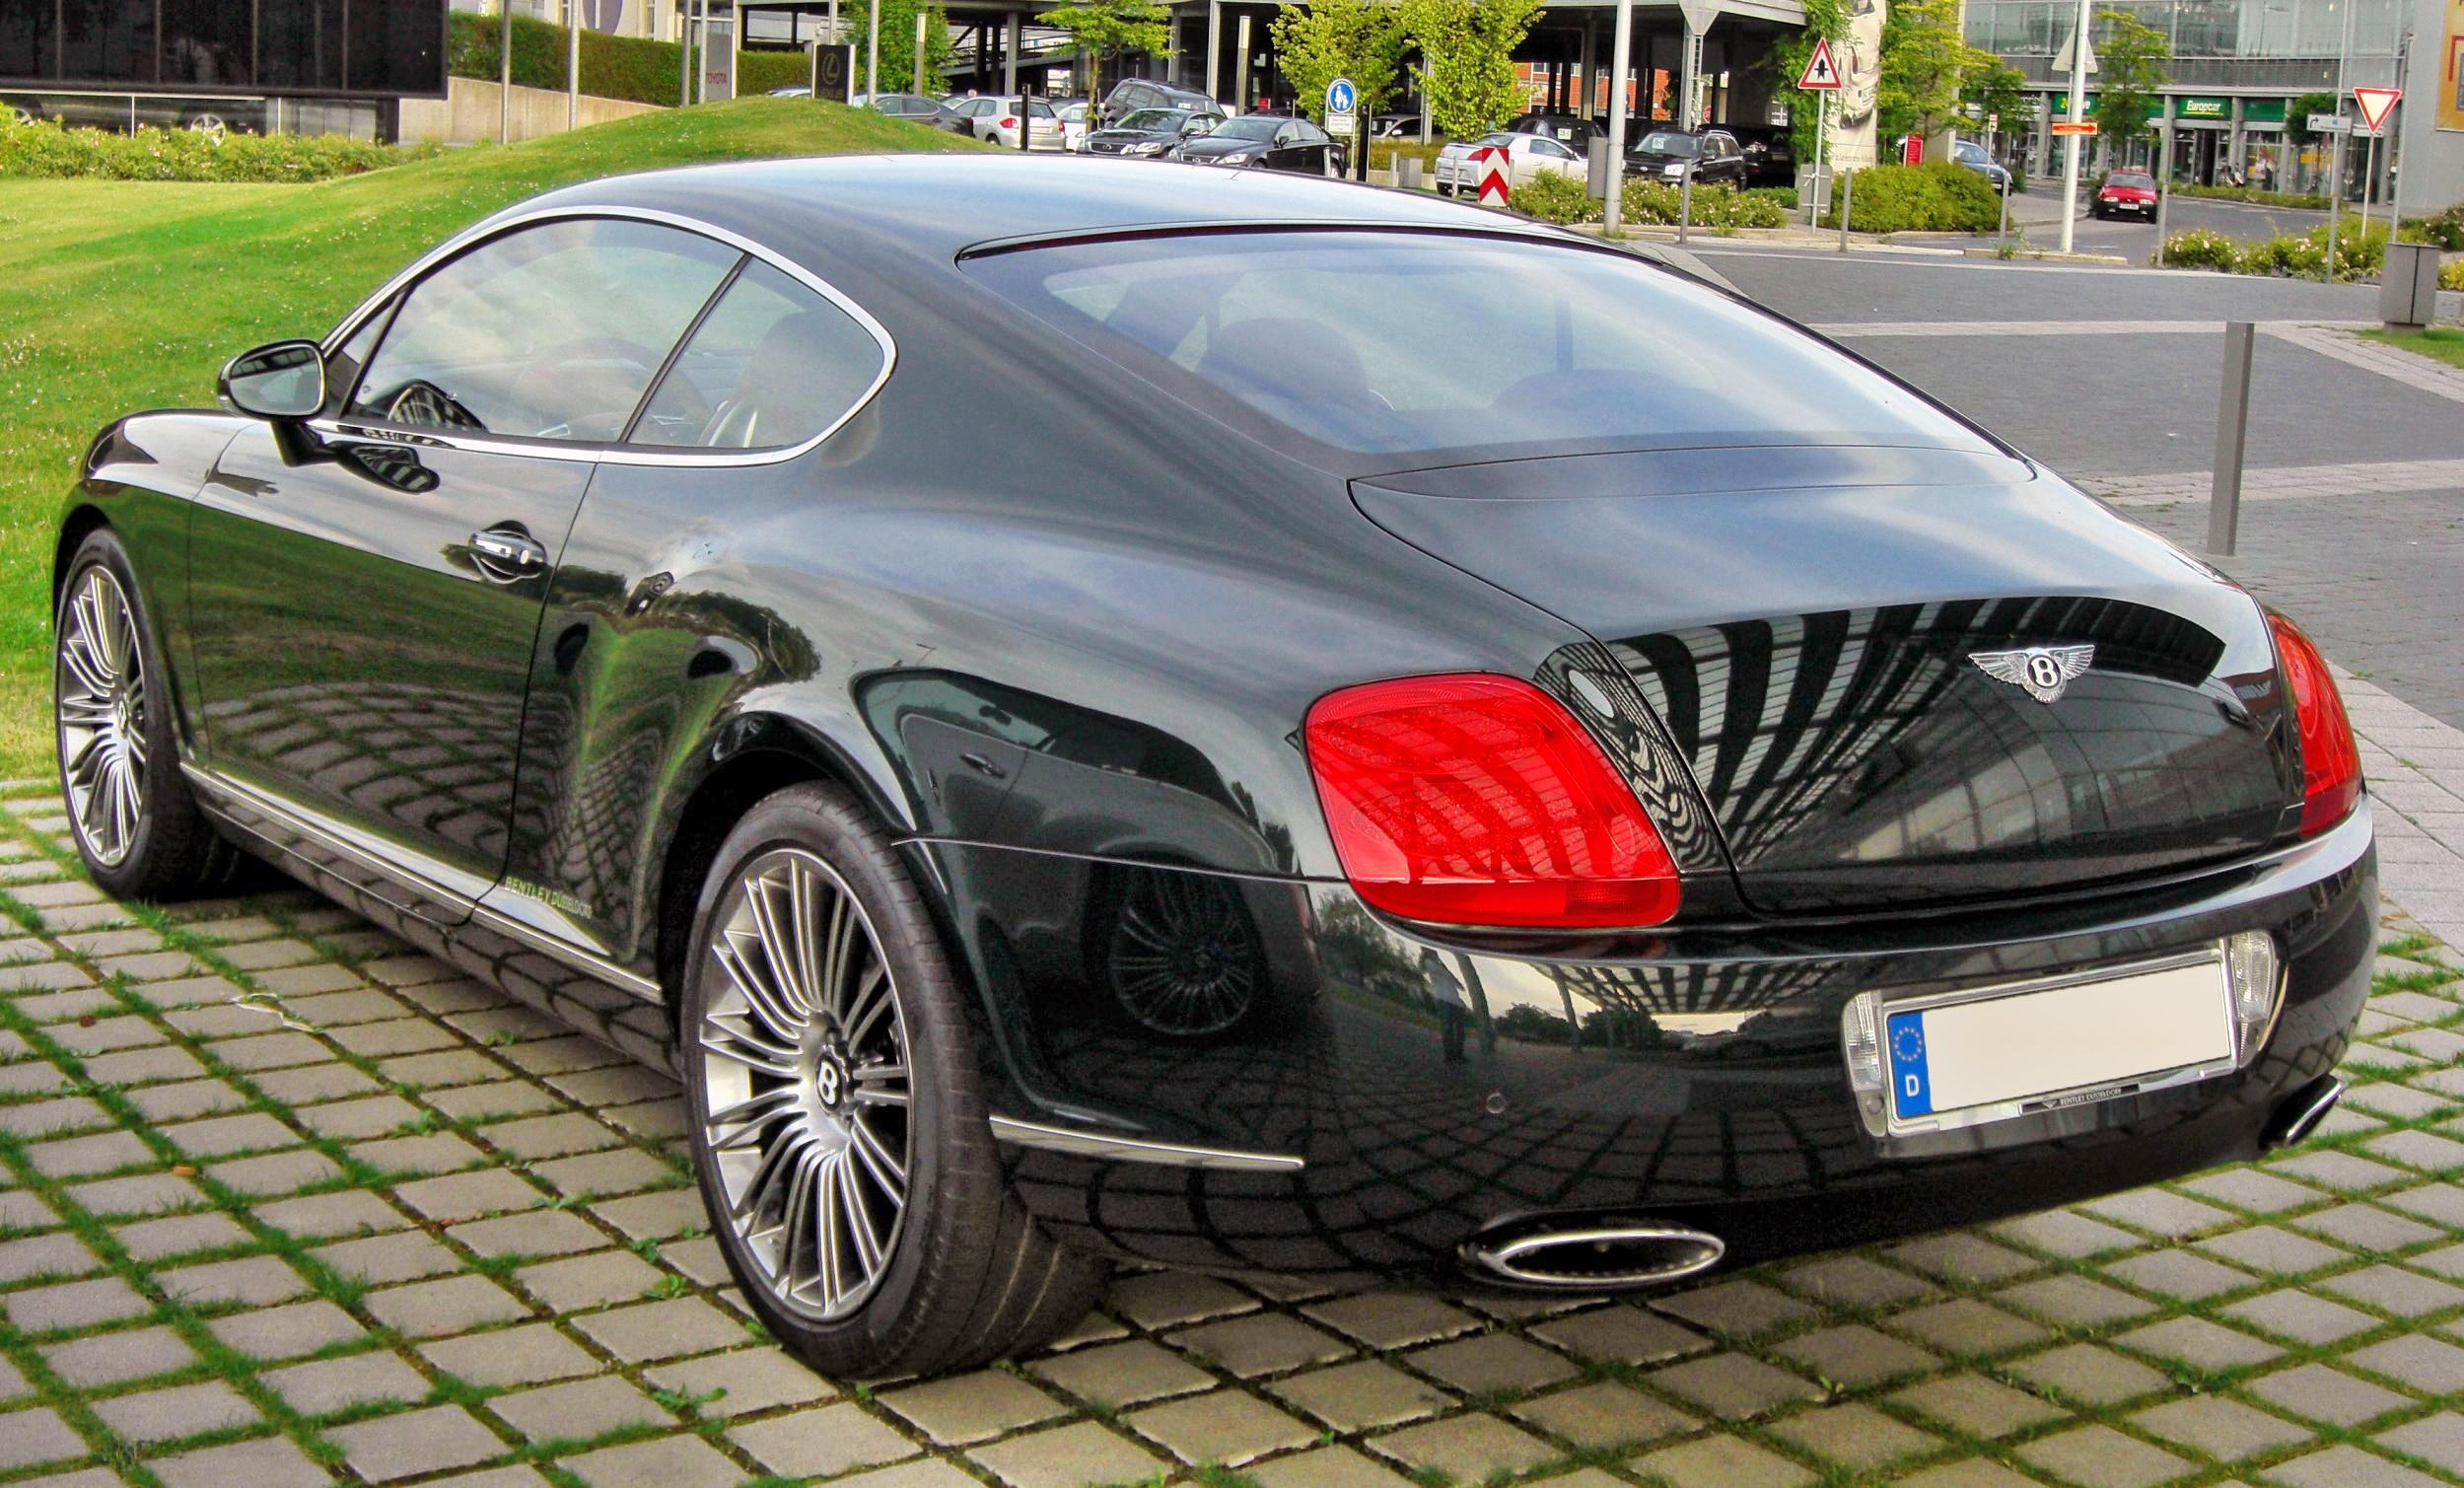 2009 Bentley Continental Gt Speed Information And Photos